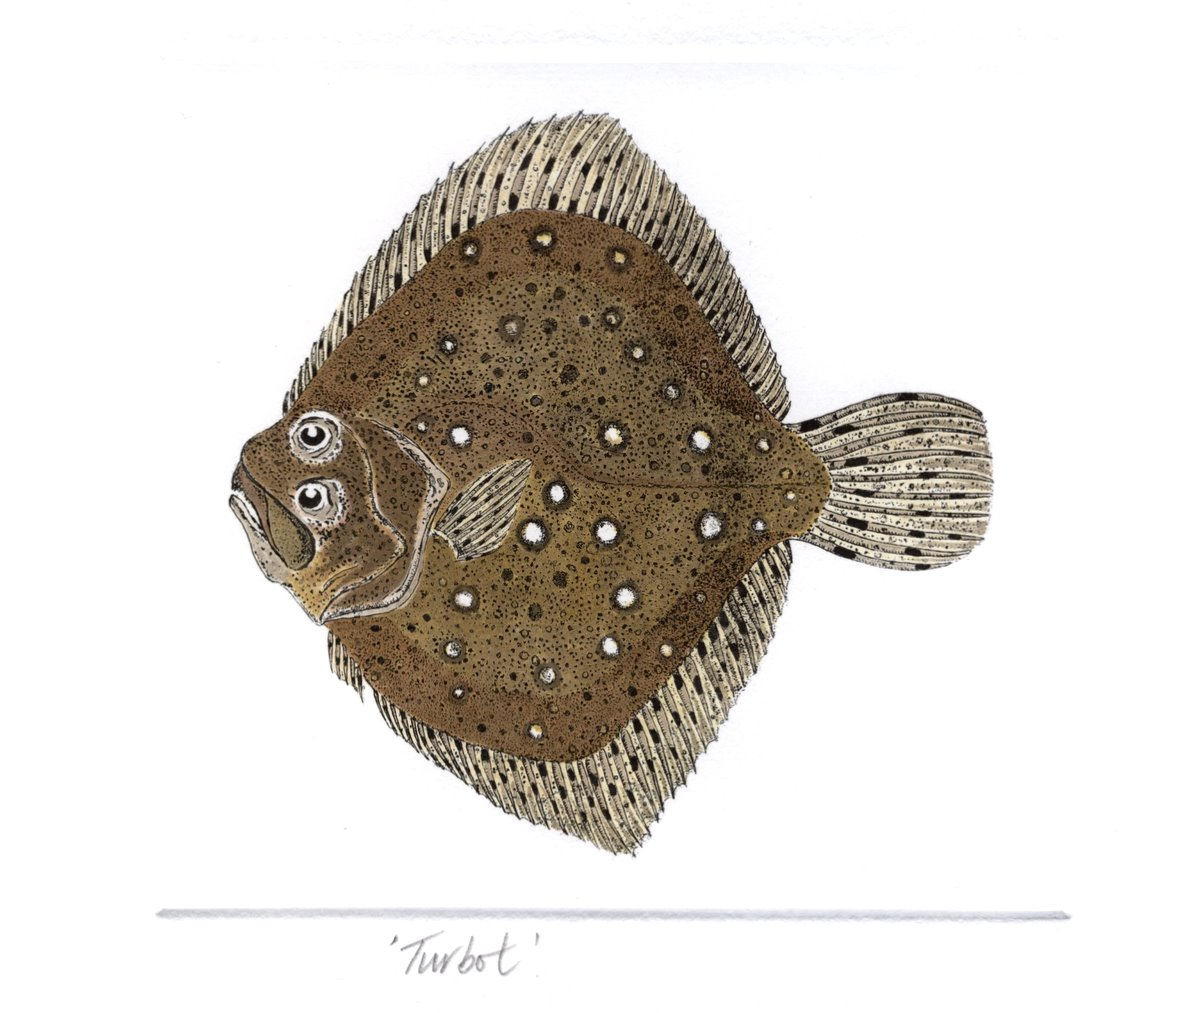 Turbot Salt Water Fish Uk Hand Coloured Etching Print